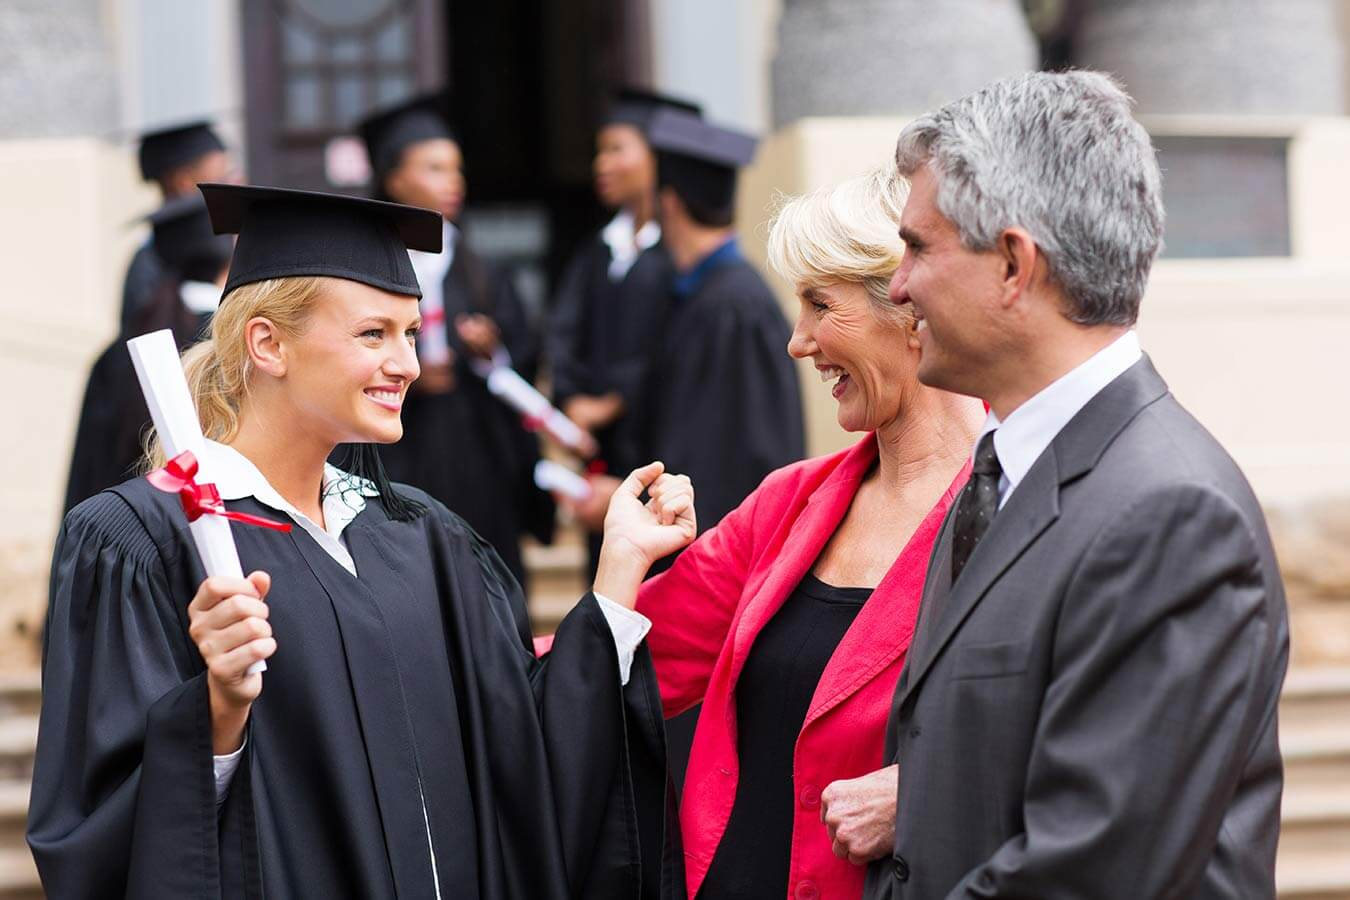 girl in cap and gown graduating from college holding her diploma with her happy parents congratulating her